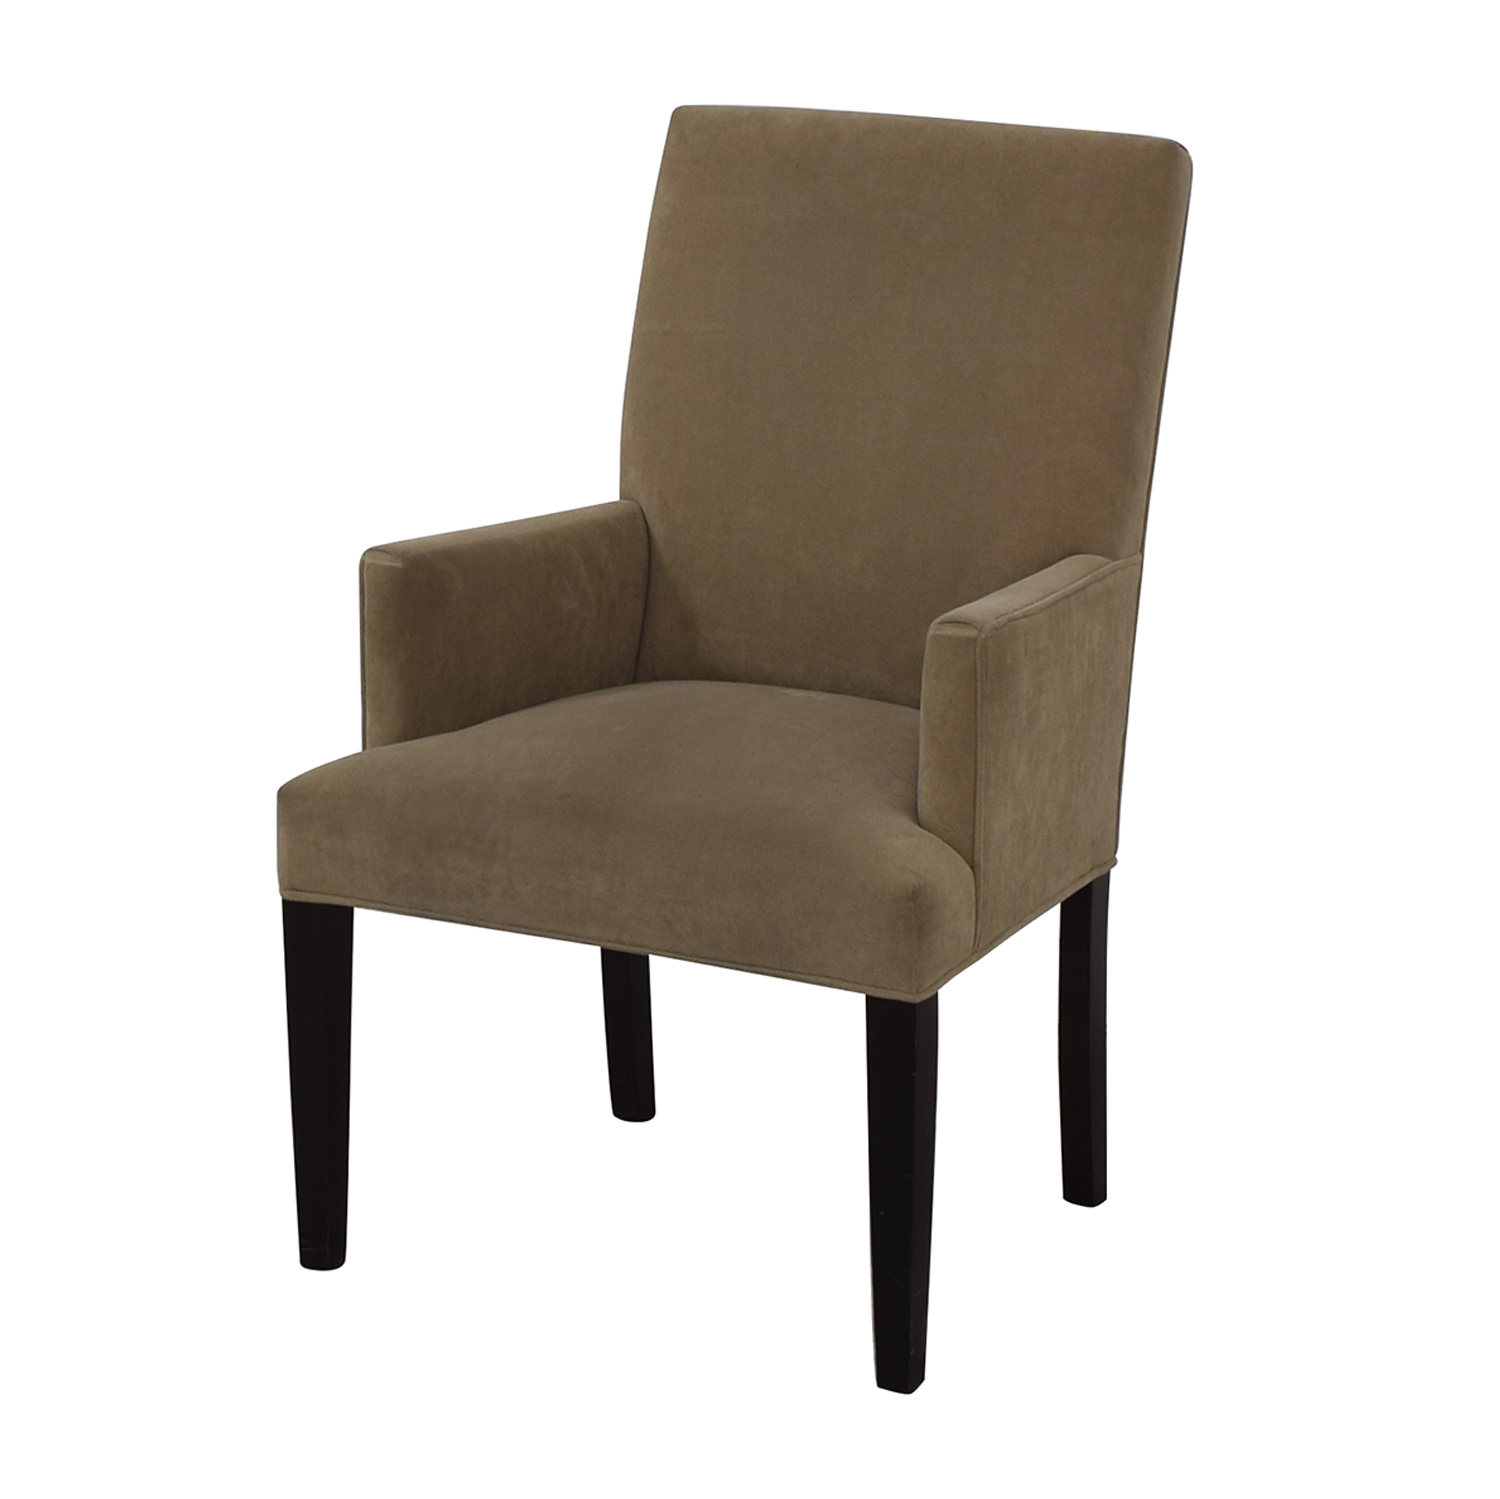 Crate & Barrel Tan Dining Chair / Chairs